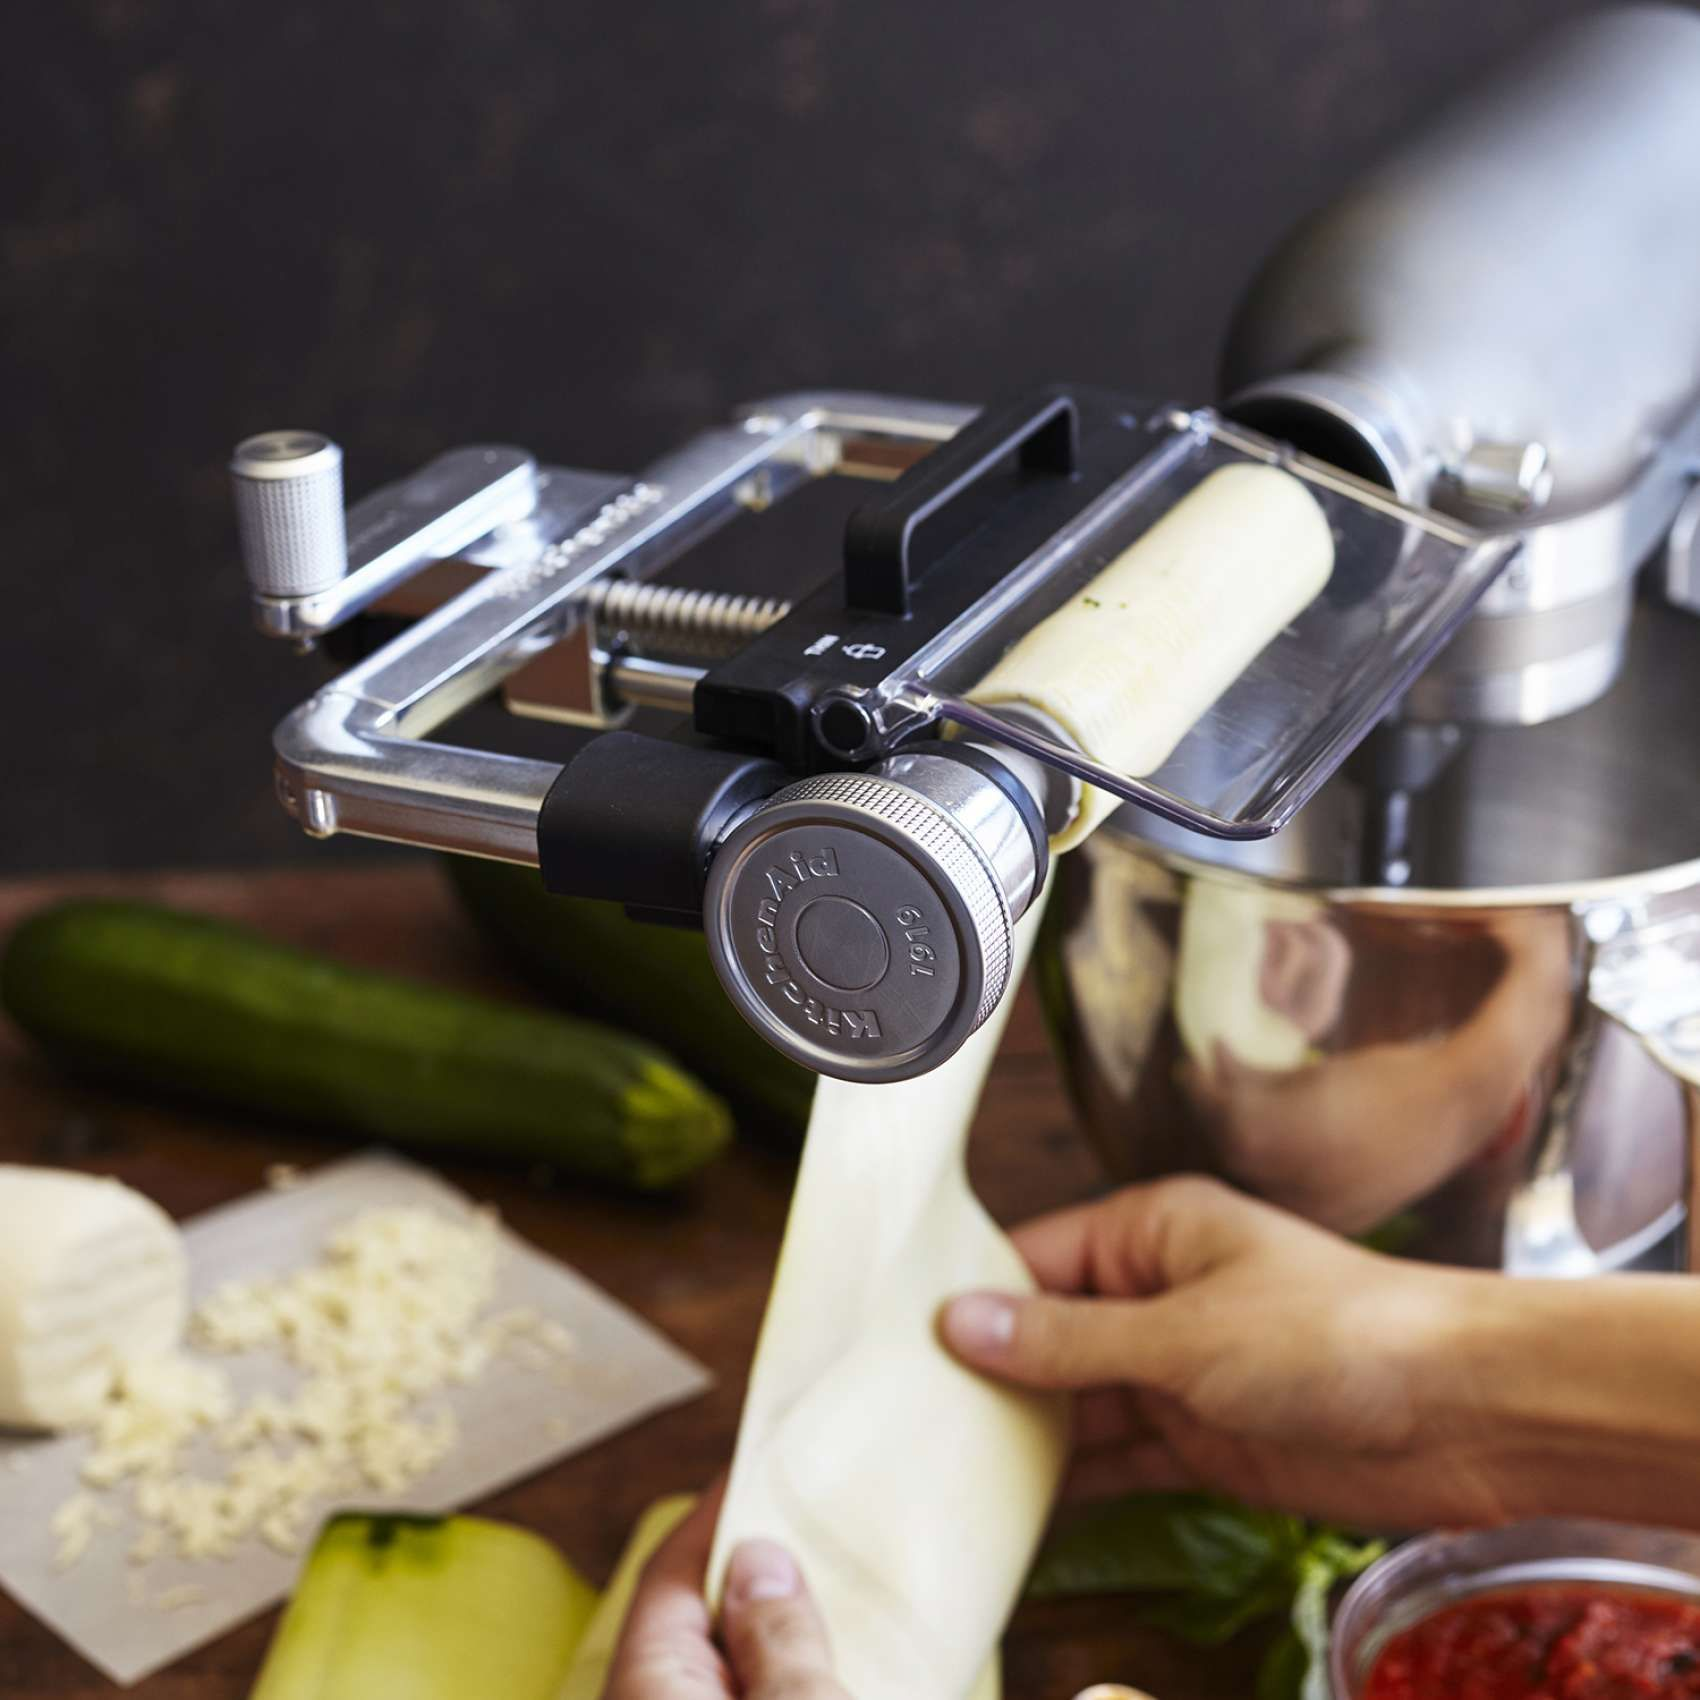 Kitchenaid Vegetable Sheet Cutter Attachment Products I Love